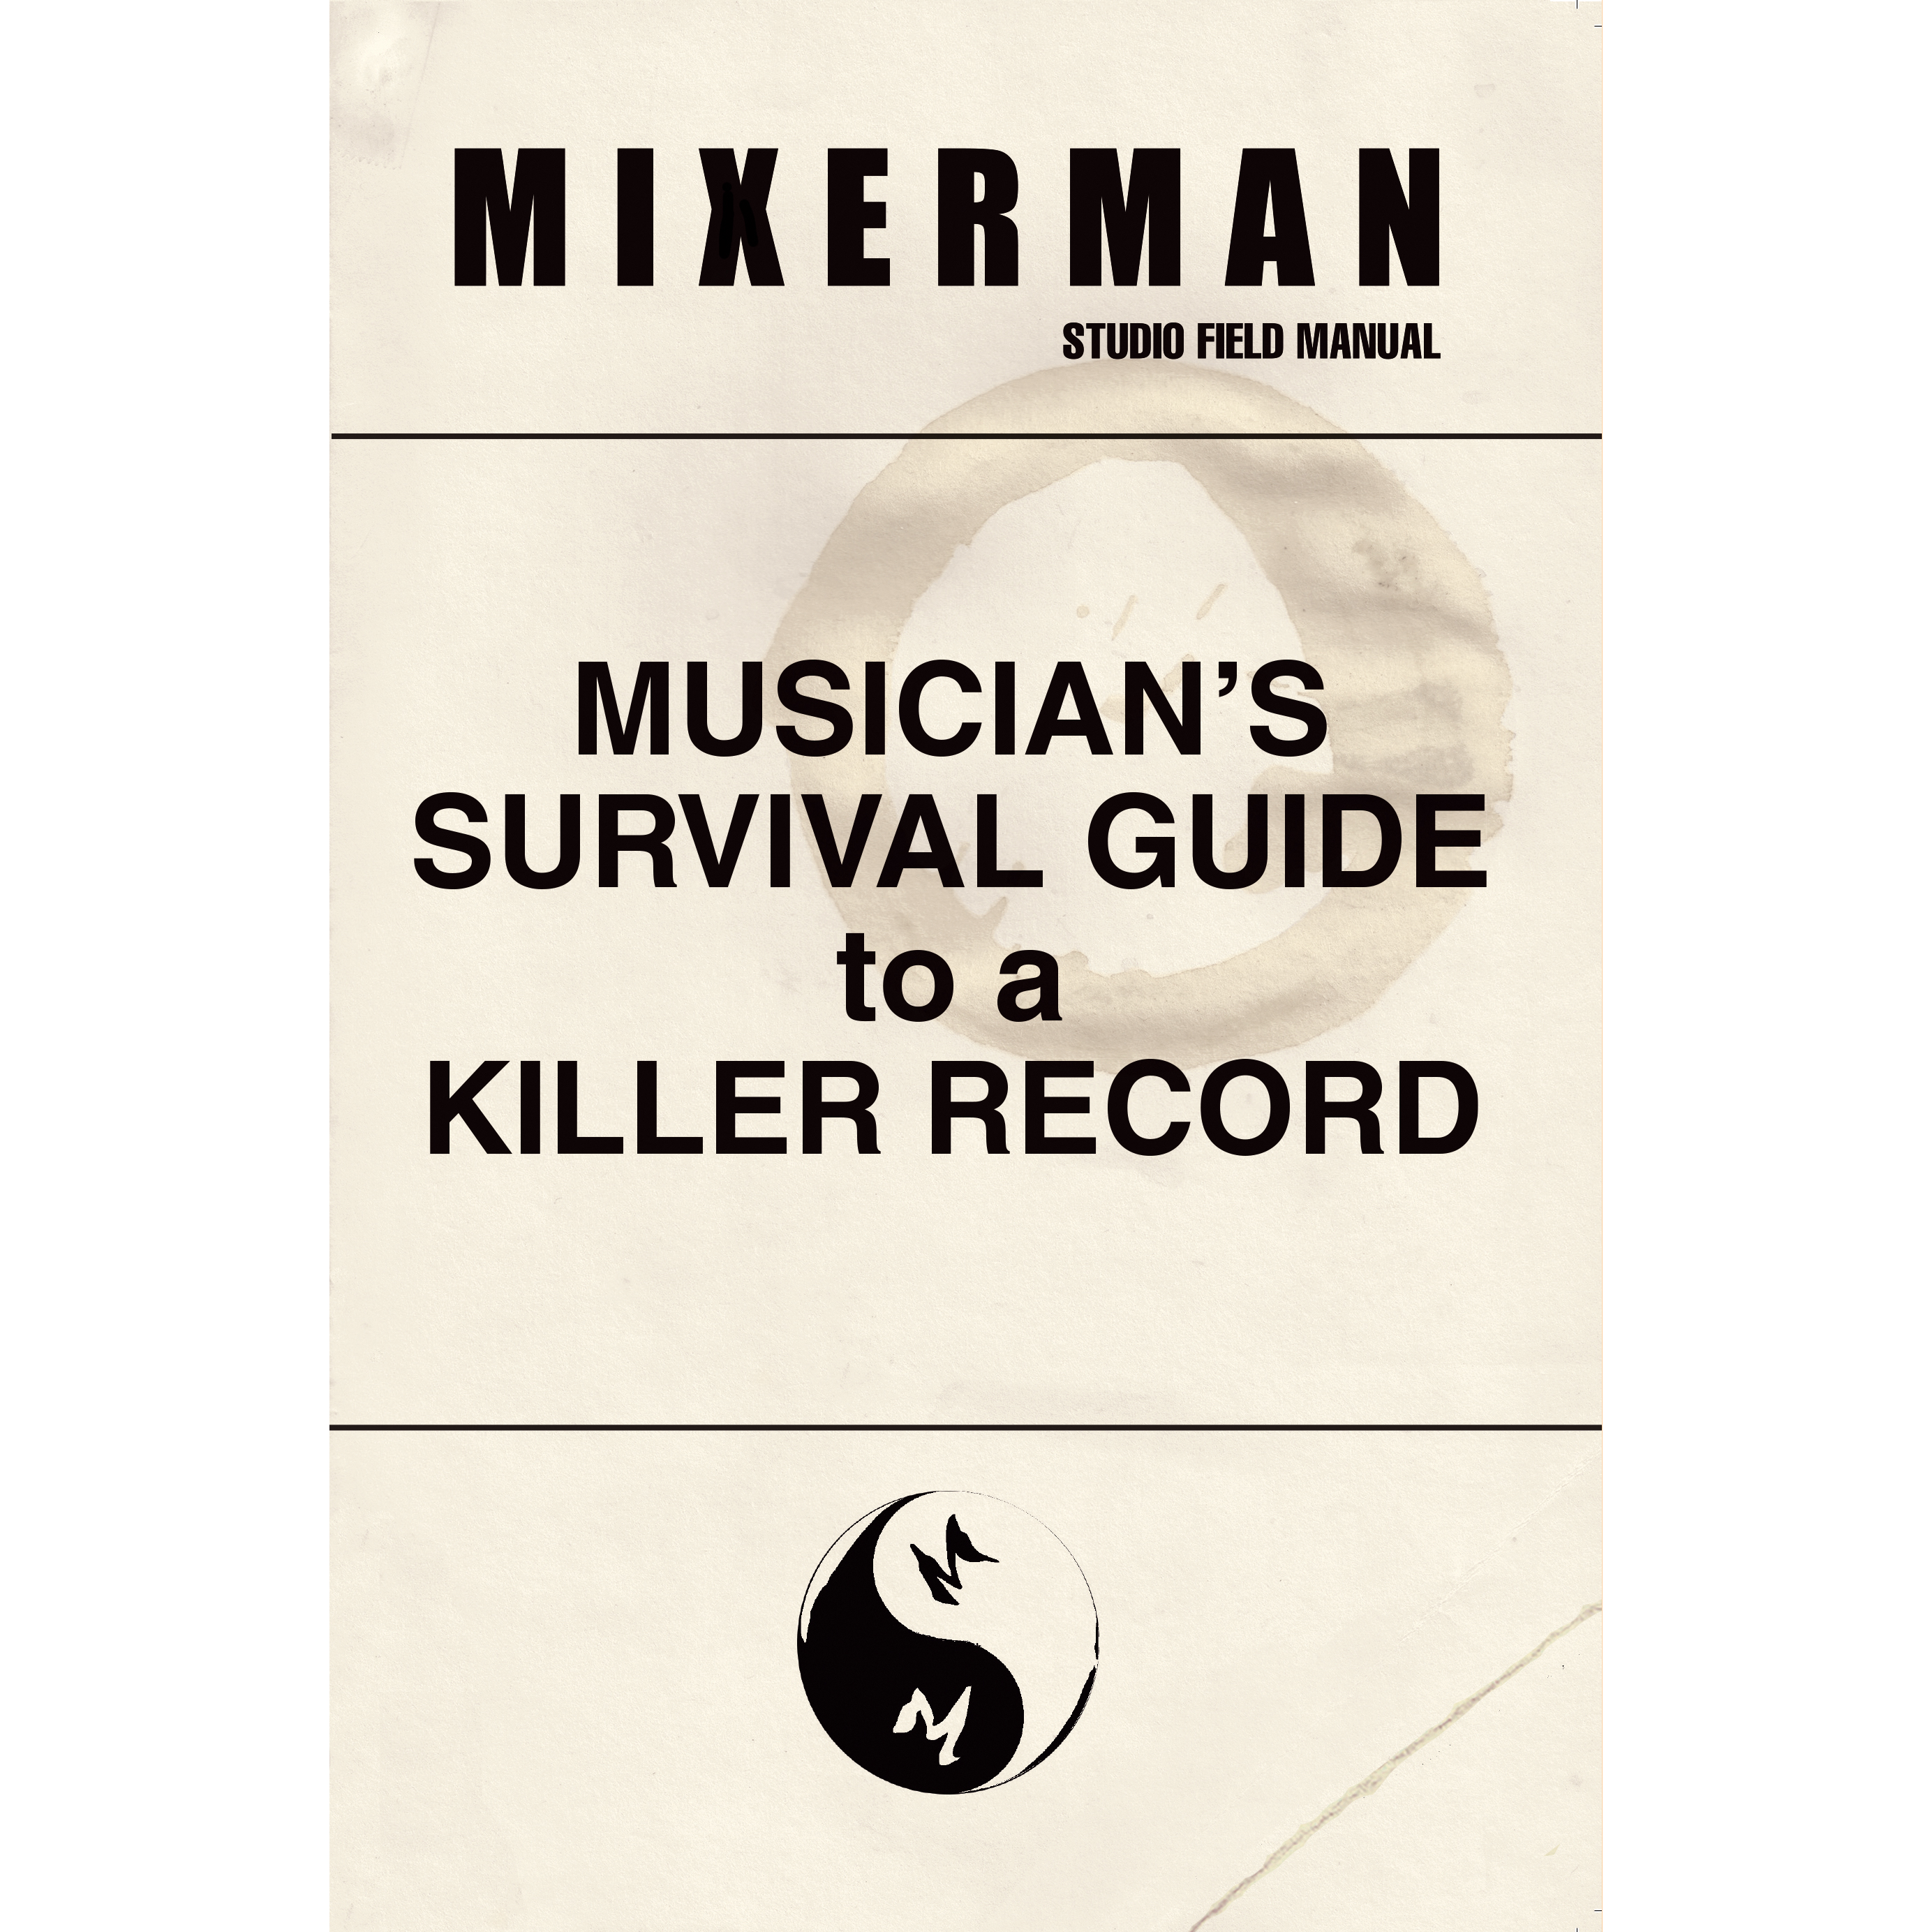 Musician s Survival Guide to a Killer Record e595049cd7a8